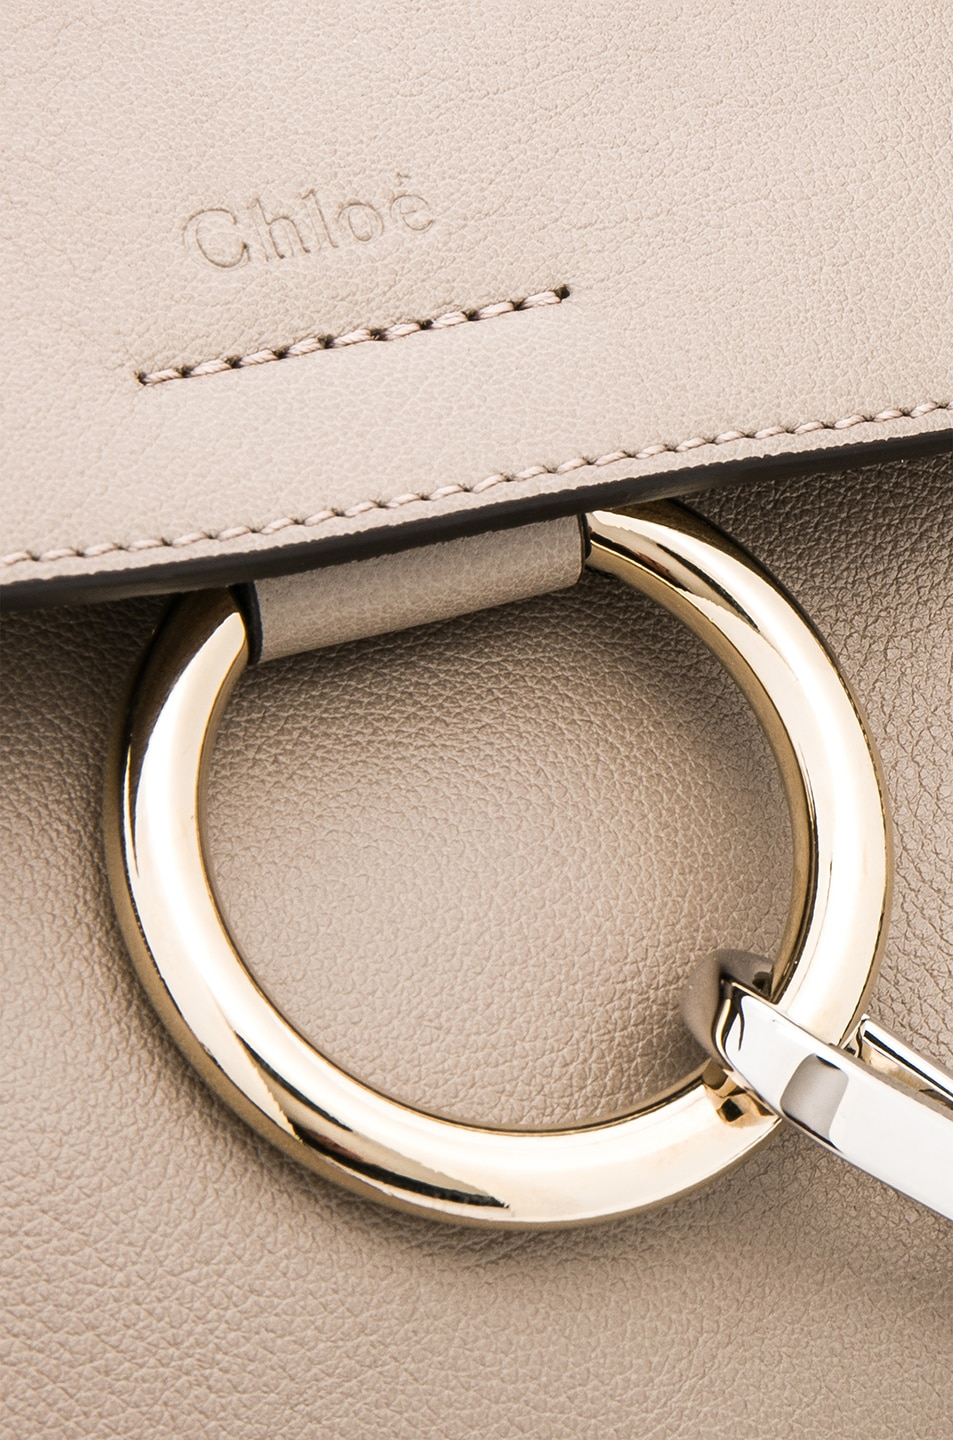 Image 8 of Chloe Mini Faye Calfskin & Suede Day Bag in Motty Grey